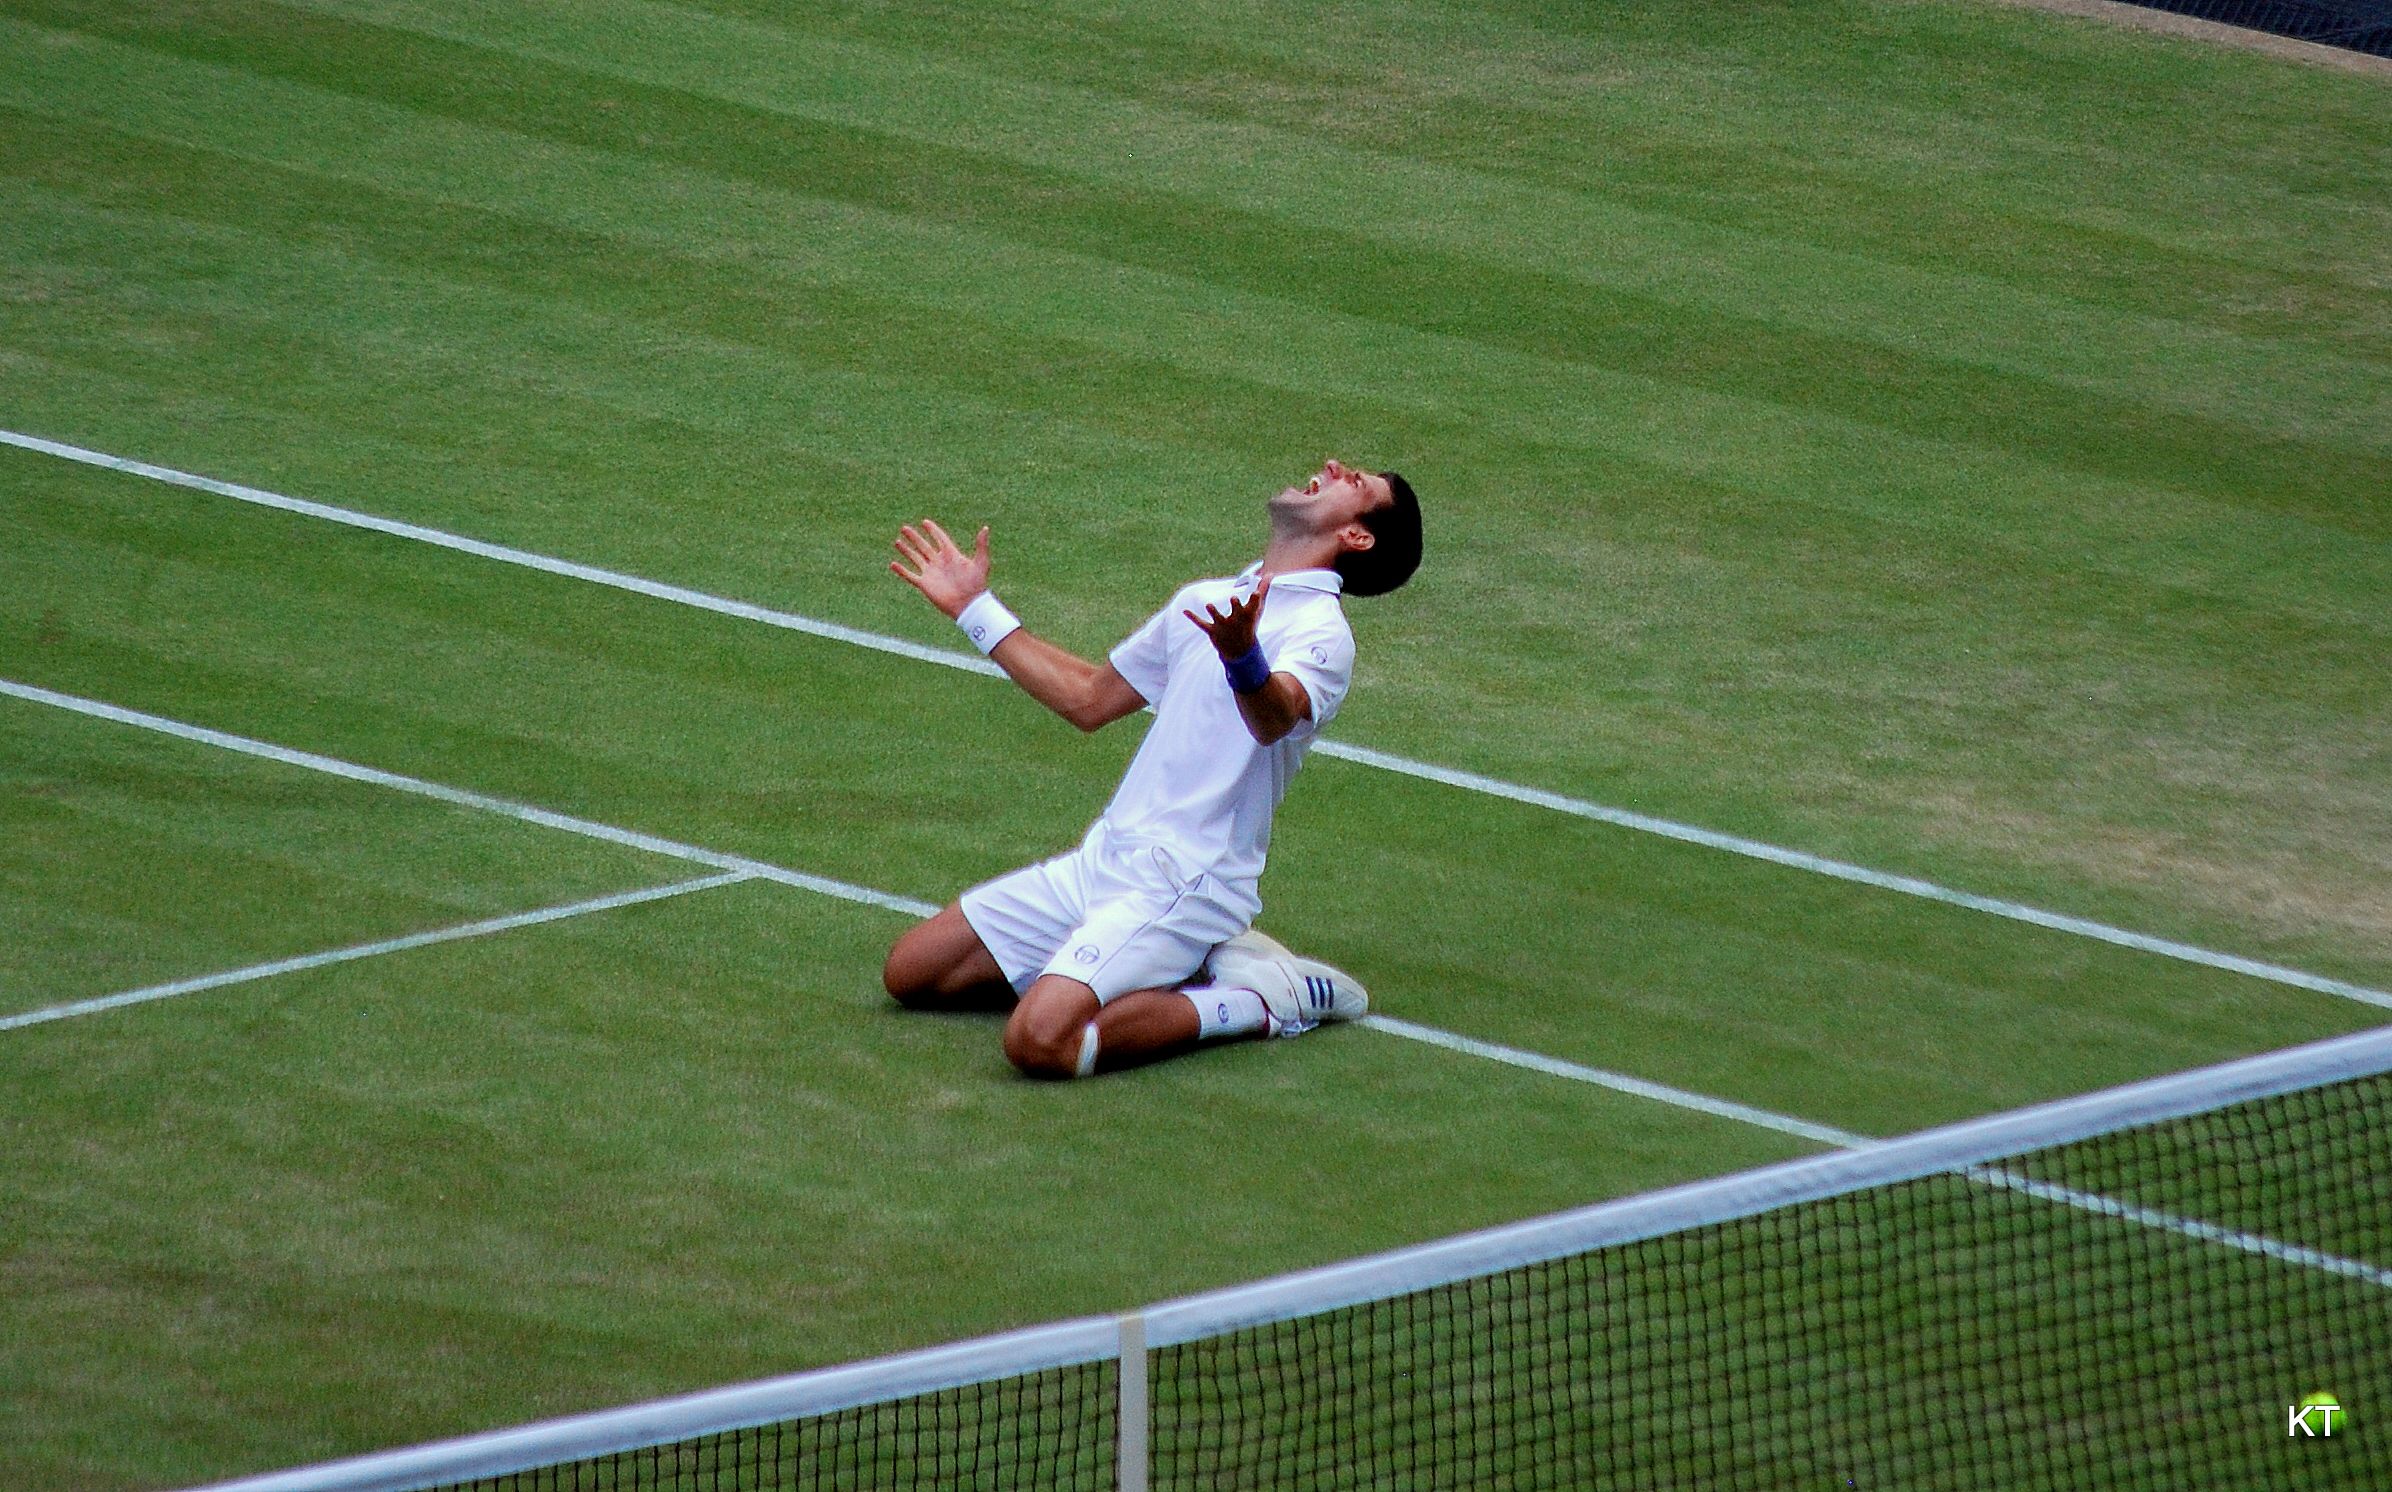 When it all began: Novak Djokovic first becomes the number one ranked male tennis player after defeating Jo-Wilfried Tsonga in the semifinals of Wimbledon, 2011.